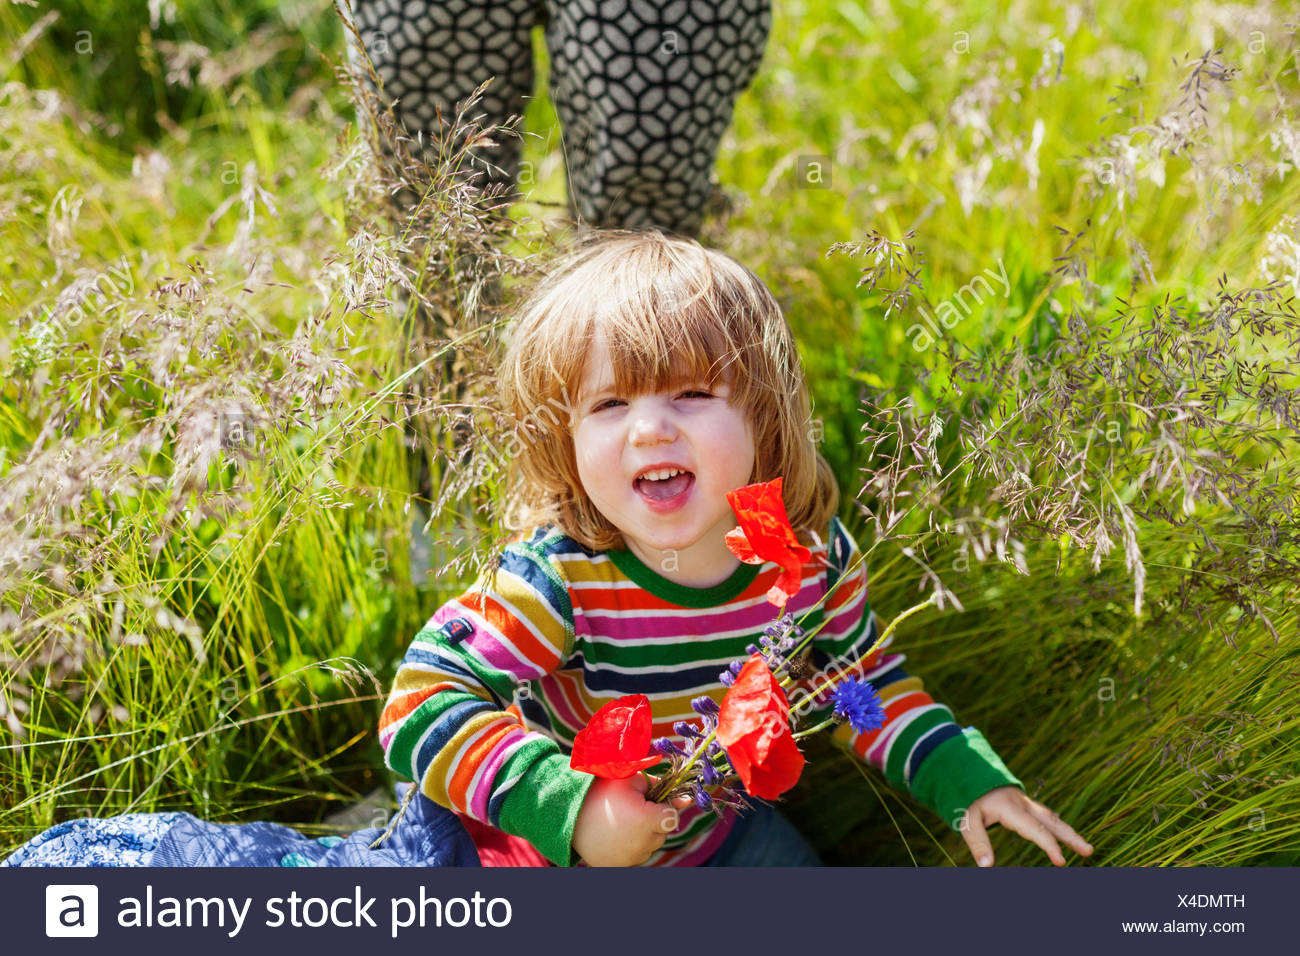 Girl holding poppy flowers and sitting at grassy field by woman - Stock Image